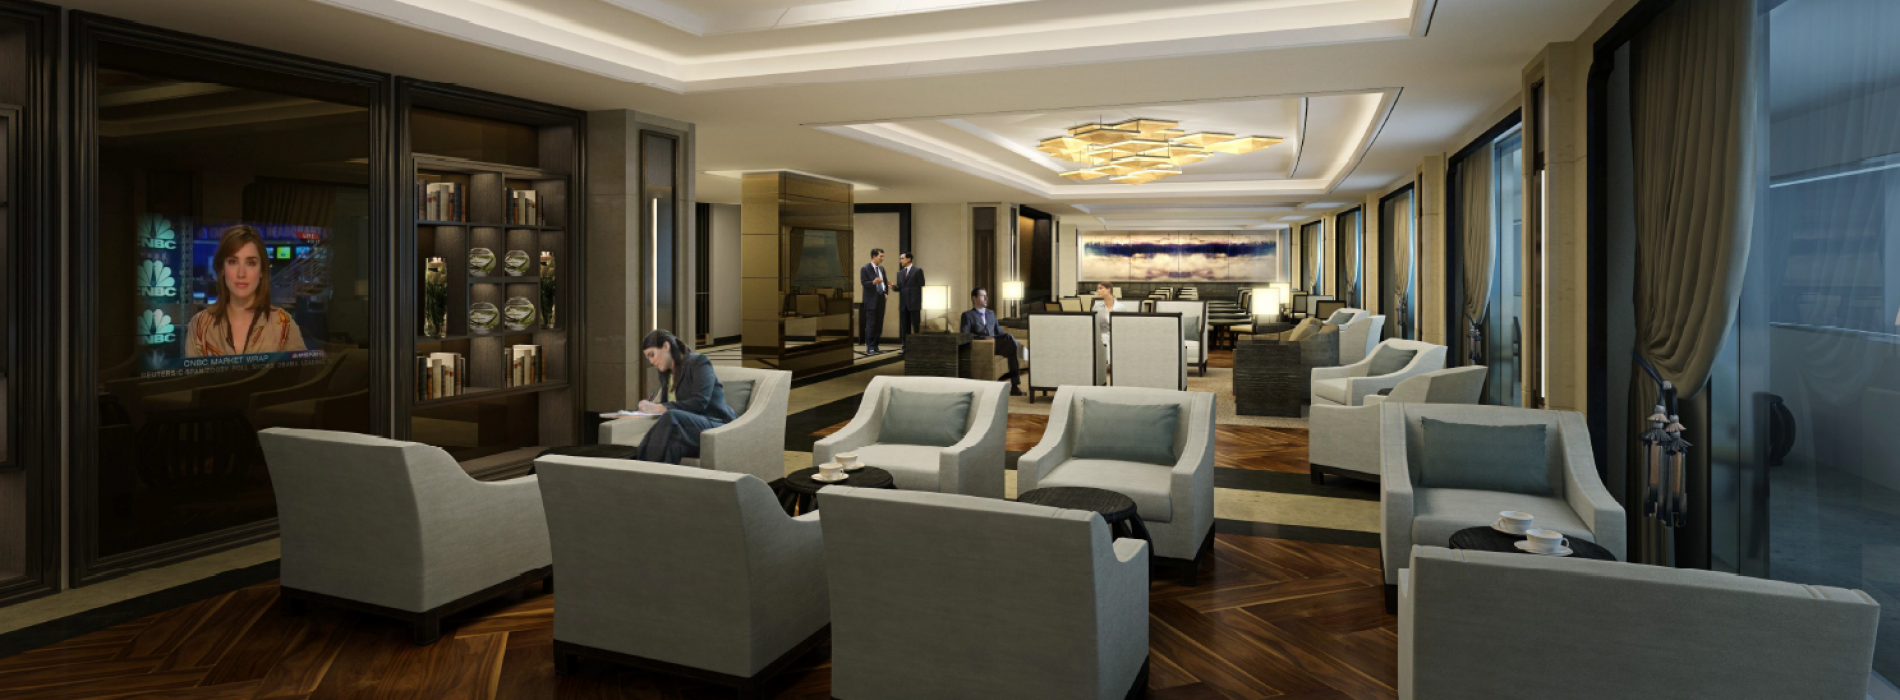 Radisson to launch two new hotels in Wuhan, China